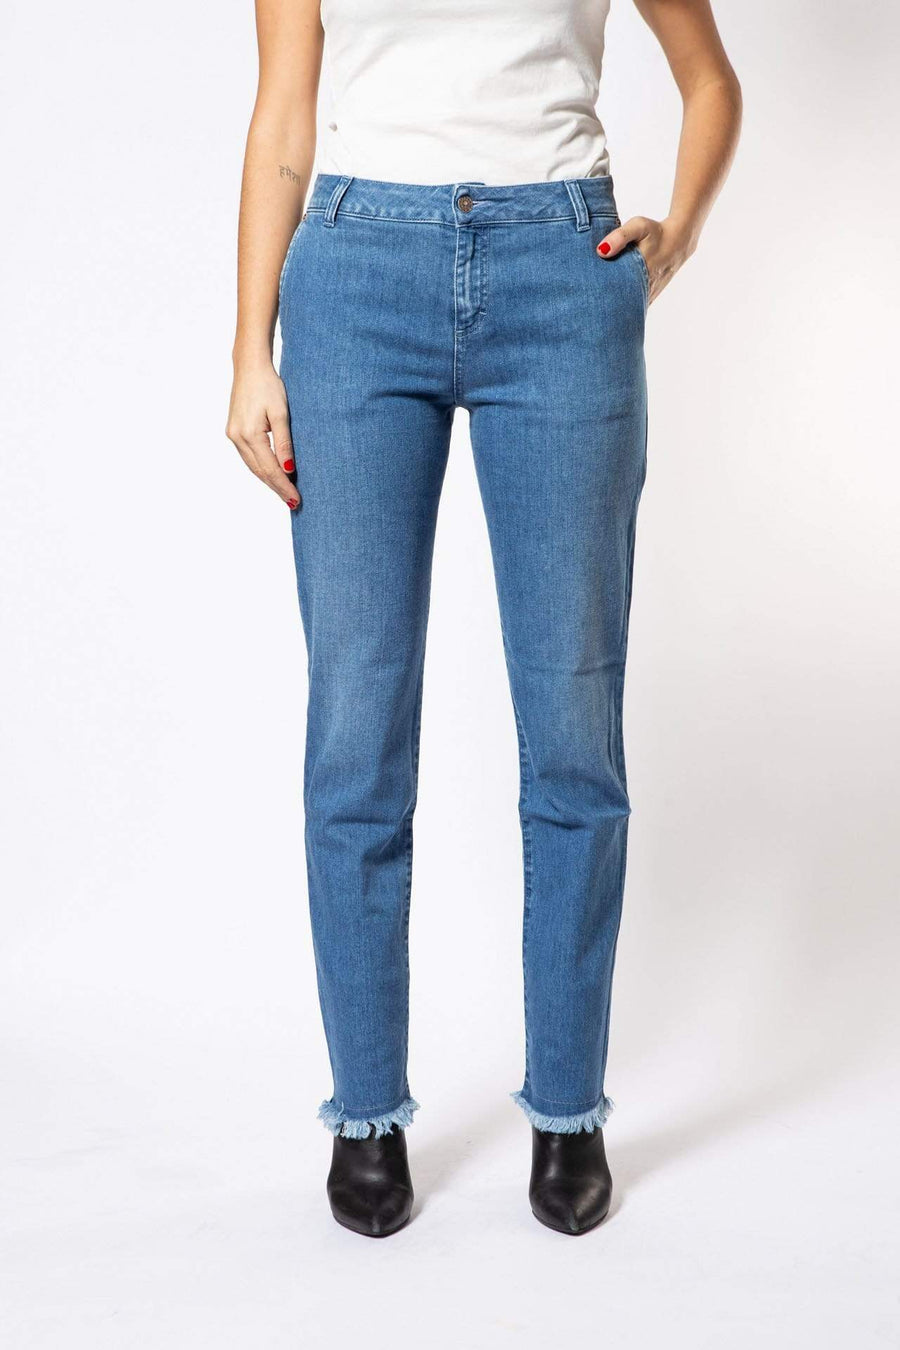 Par.co DENIM Woman Lavanda Straight Jeans sustainable fashion ethical fashion